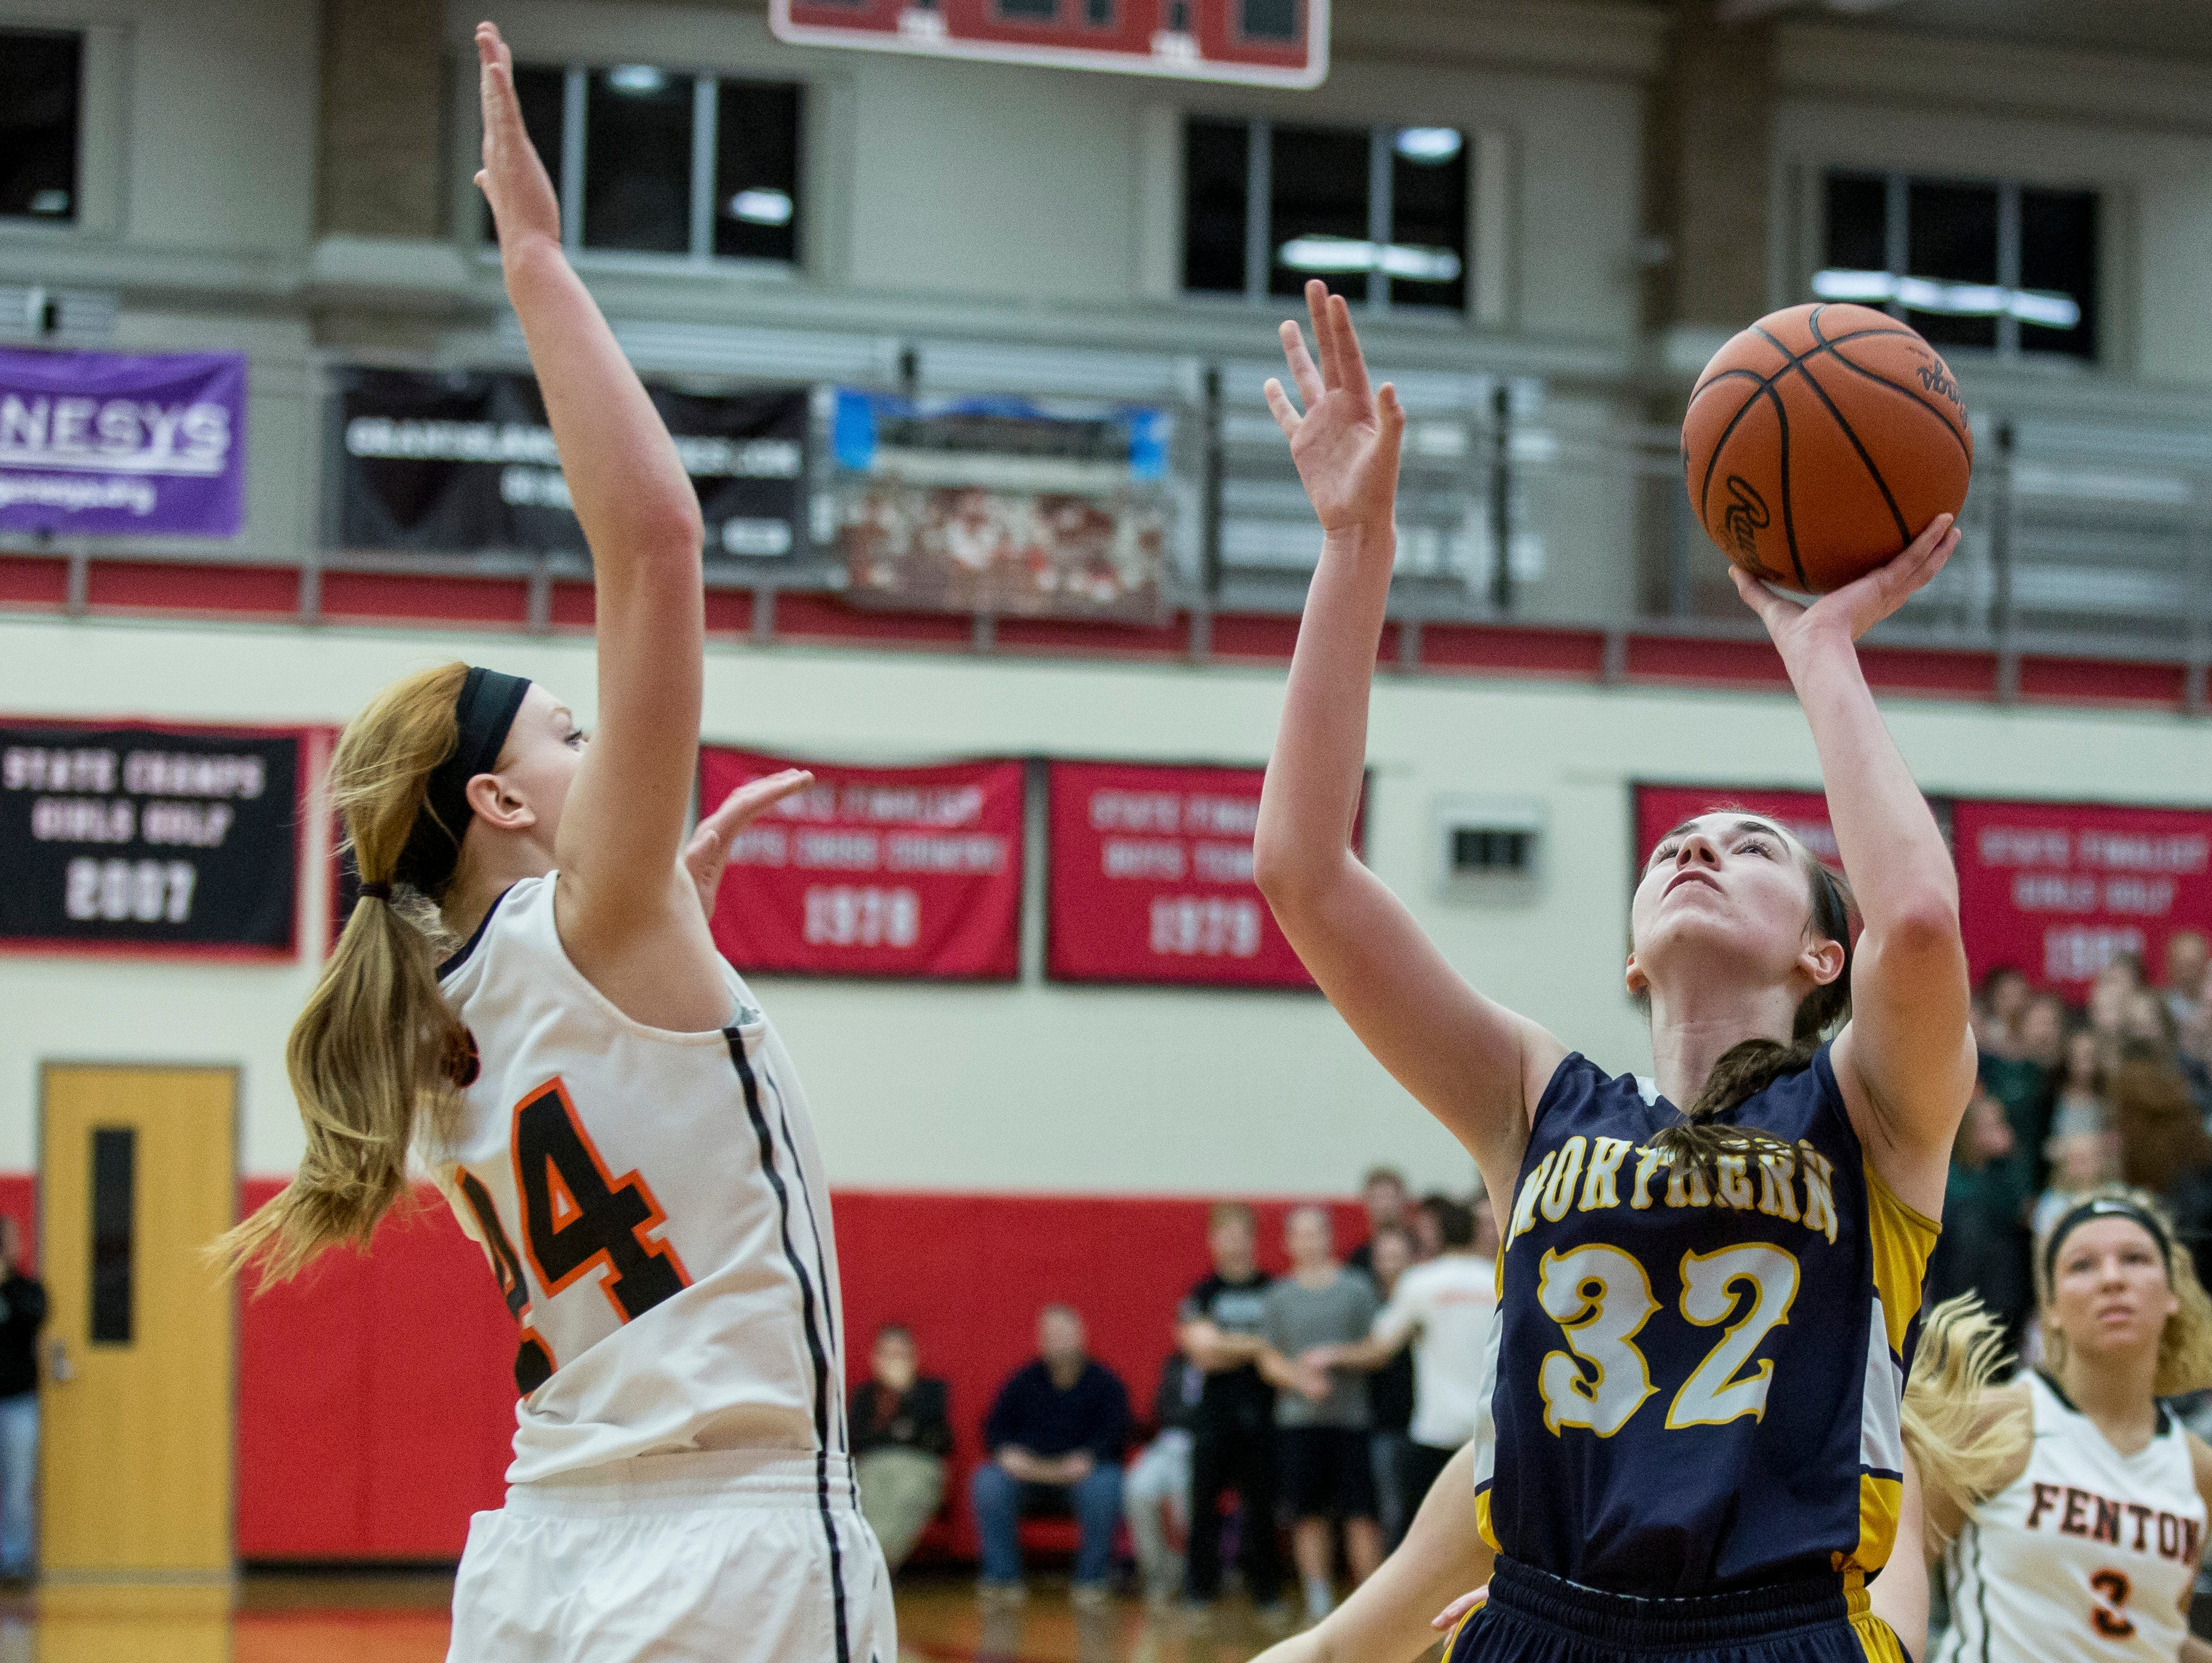 Port Huron Northern junior Bree Bauer takes a shot during a regional final basketball game Thursday, March 10, 2016 at Grand Blanc High School.